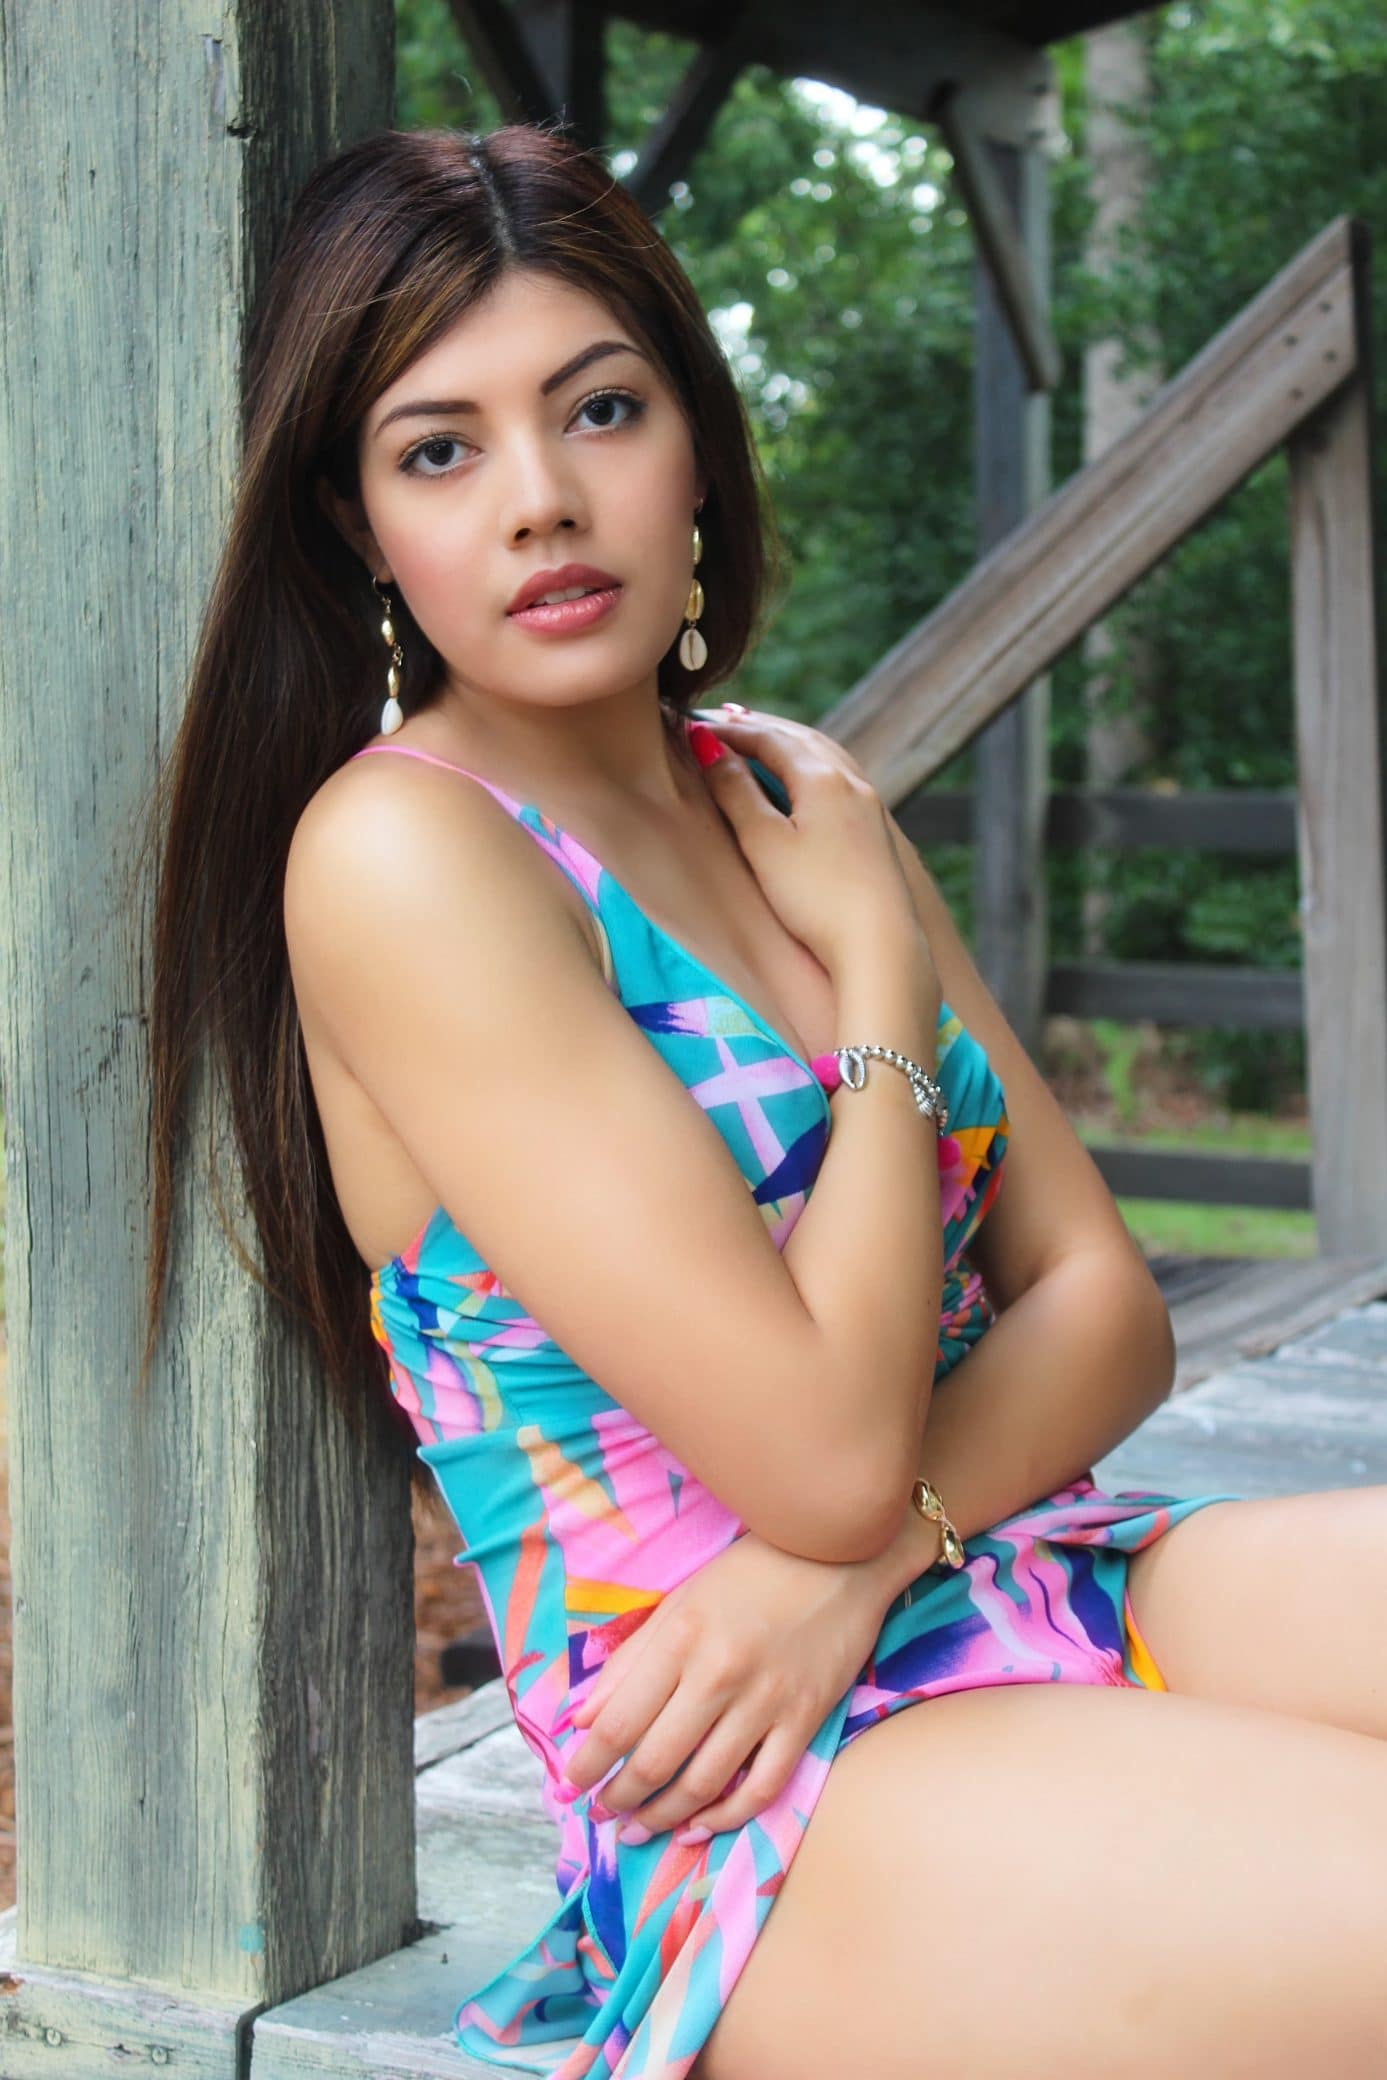 Beautiful woman Bryanna Quintero wearing an open colourful dress and jewelry sitting with her arms on her chest